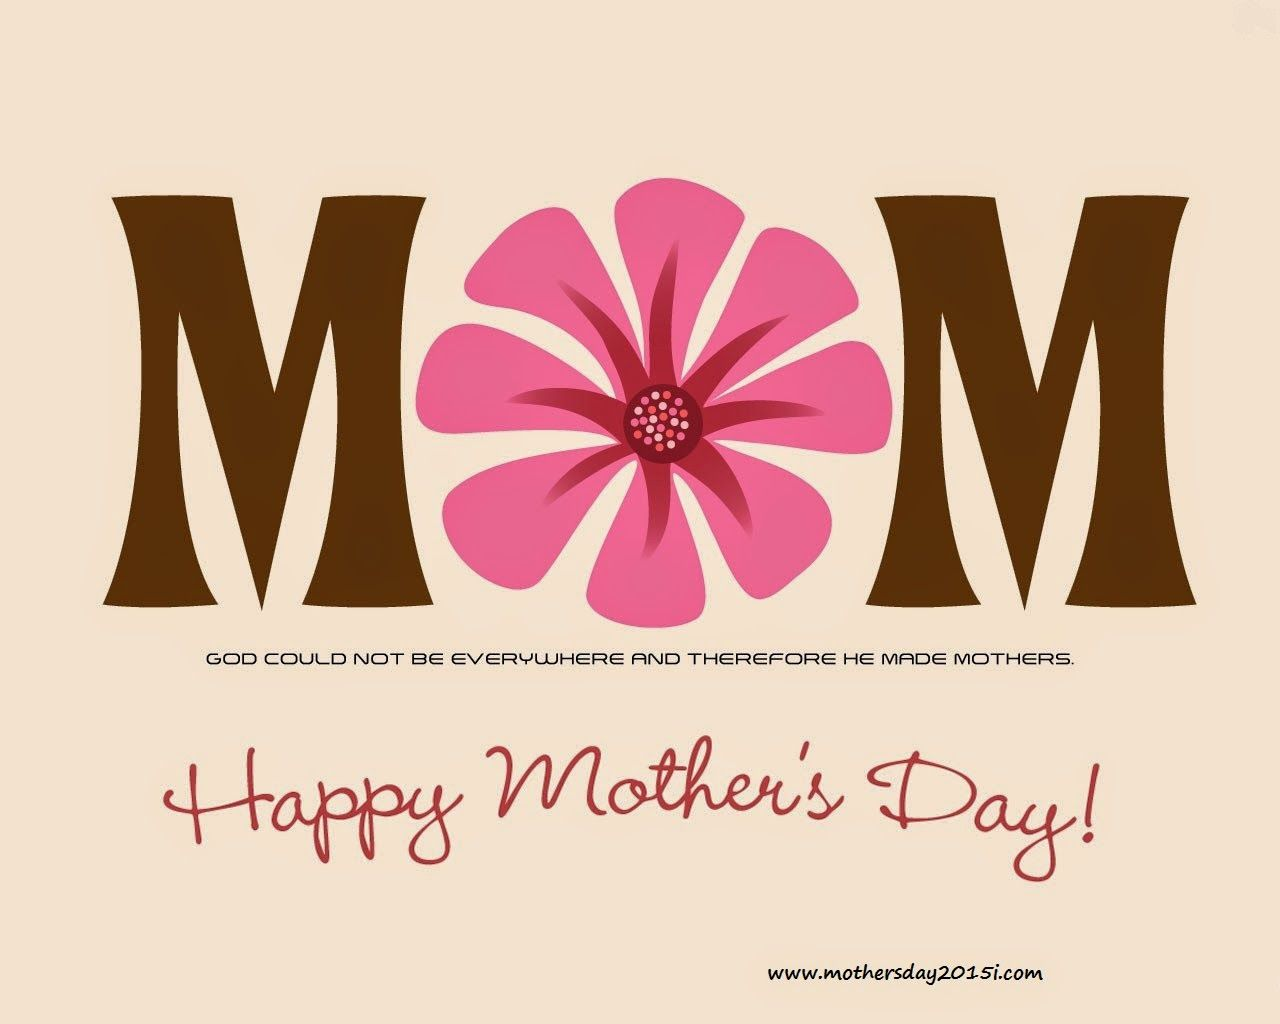 Mother's Day Gift Ideas   Let's Celebrate   Pinterest